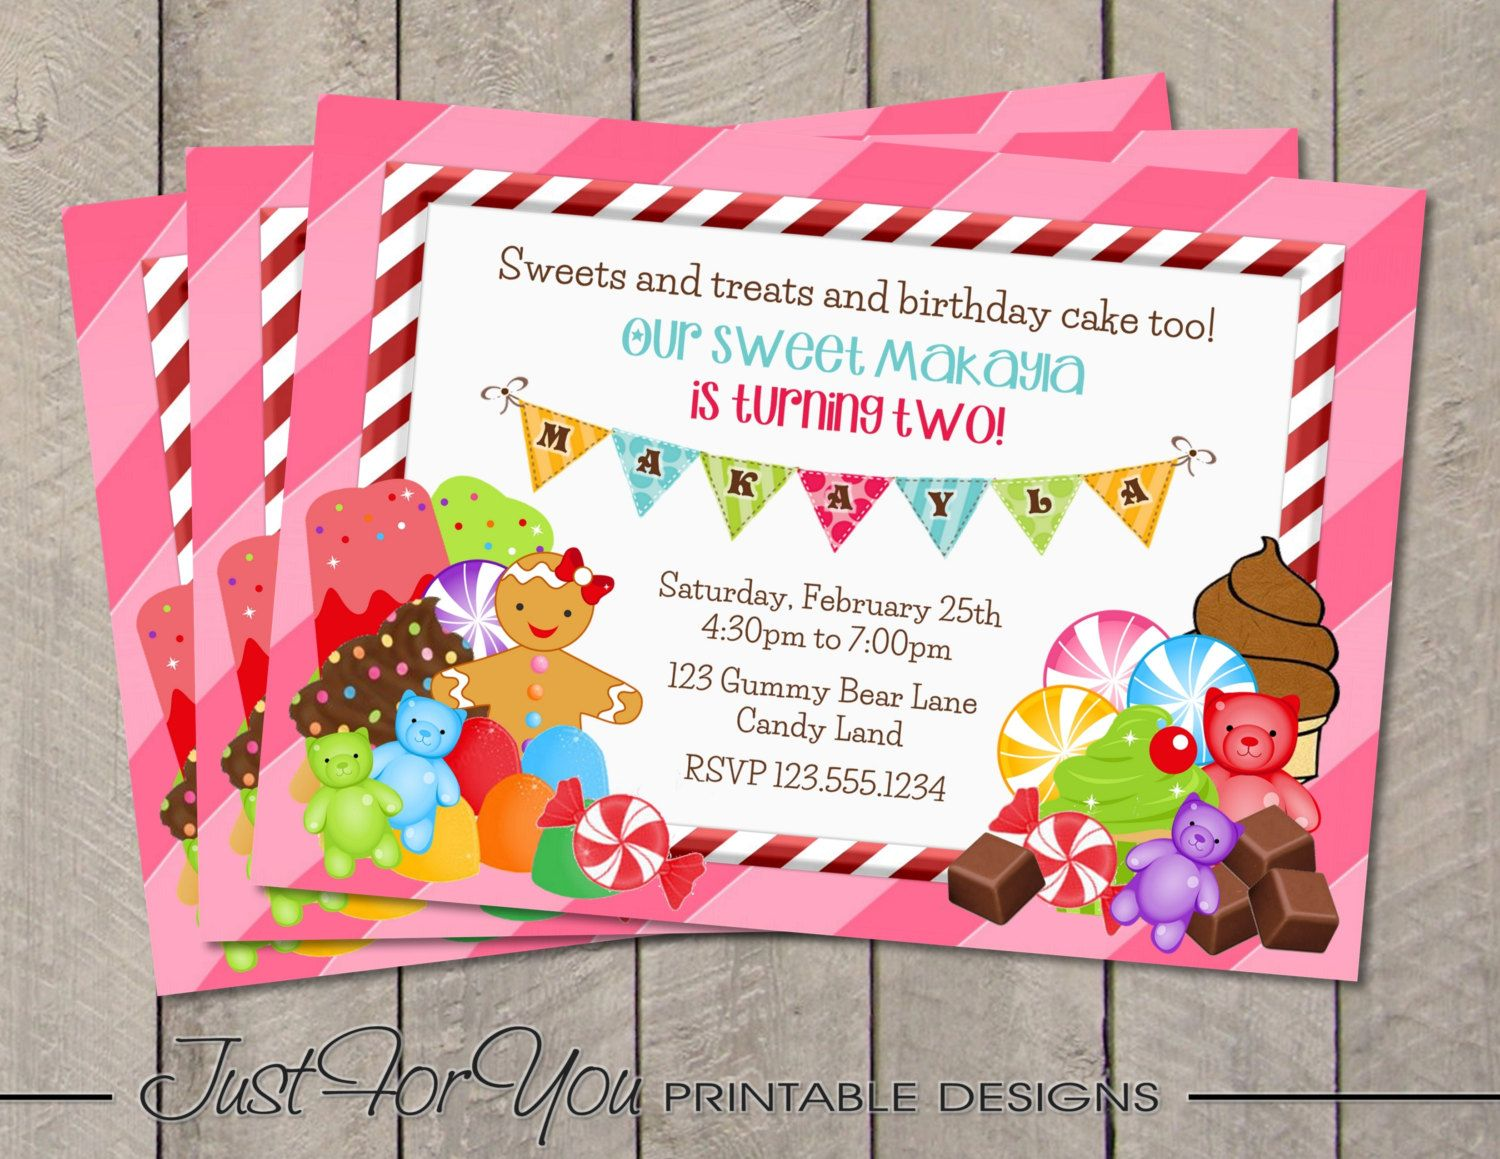 candyland queen frostine decorations | Candyland Party Invitations ...